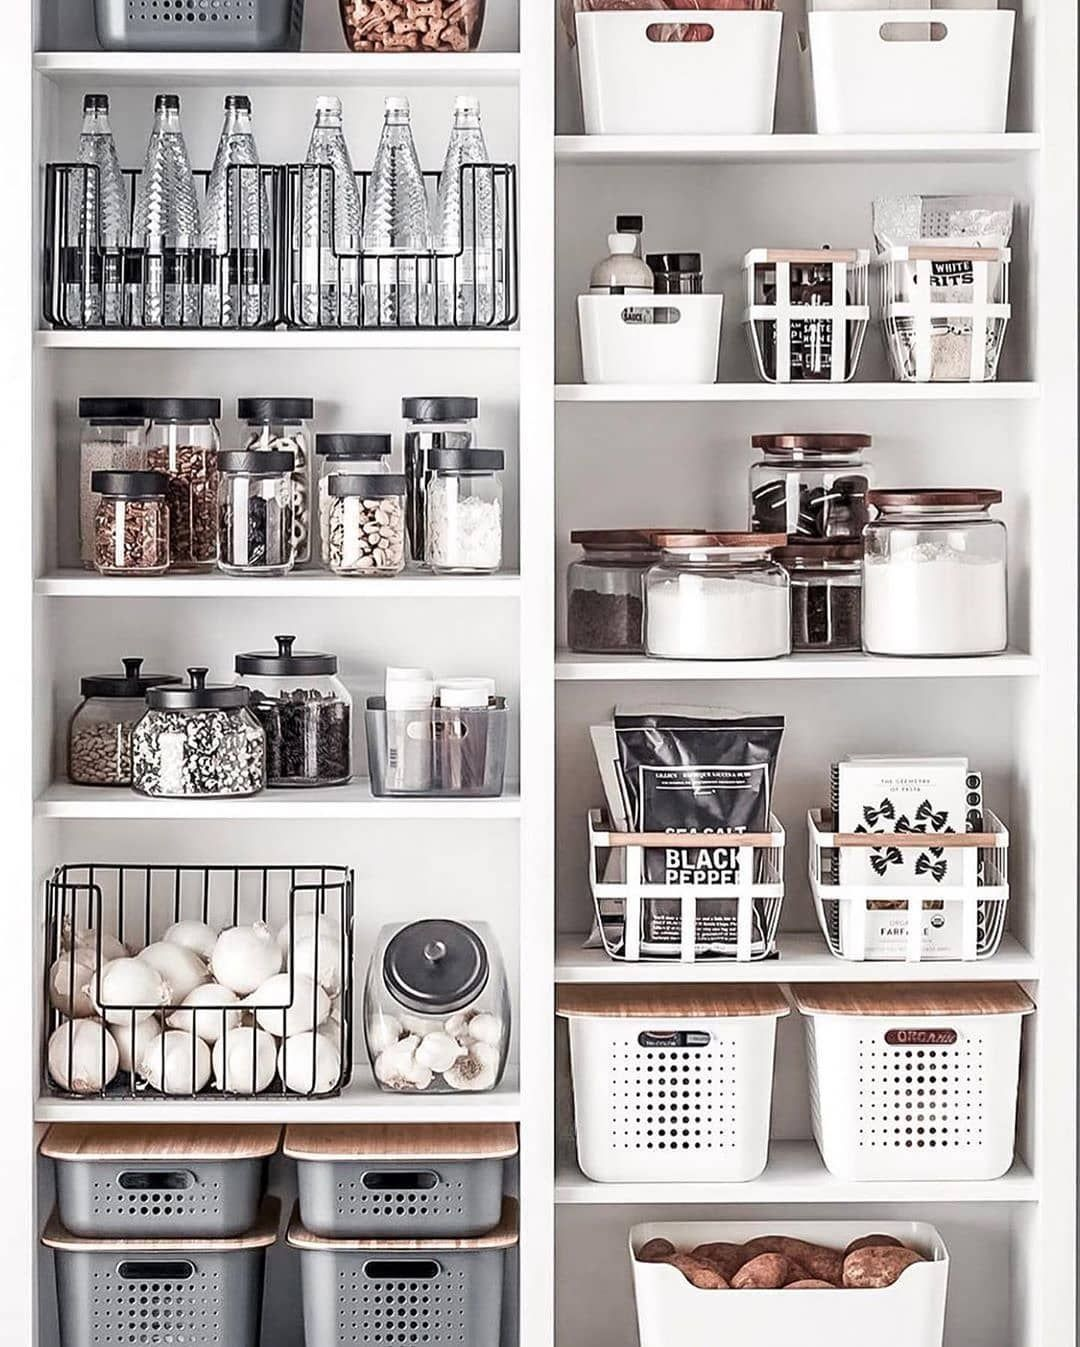 Maryam Home Organization On Instagram Loving This Black White Grey With A Touch Of Kitchen Organization Kitchen Organization Pantry Kitchen Pantry Design